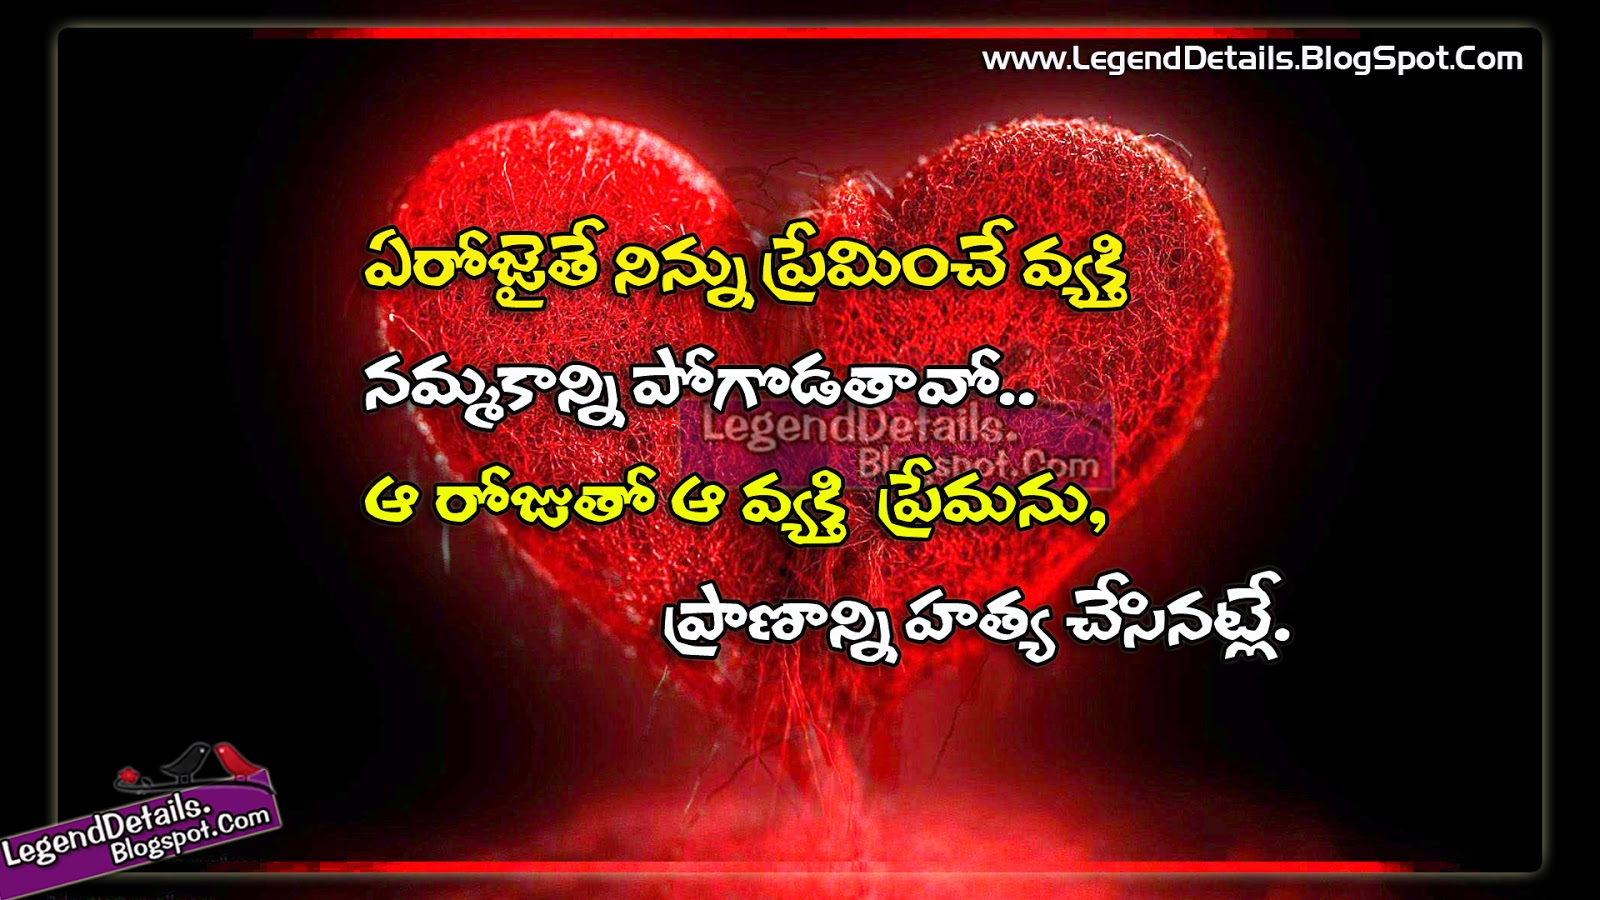 Free Vehicle Shipping Quotes Feet And Legs Diagram Cheating In Telugu Legendary